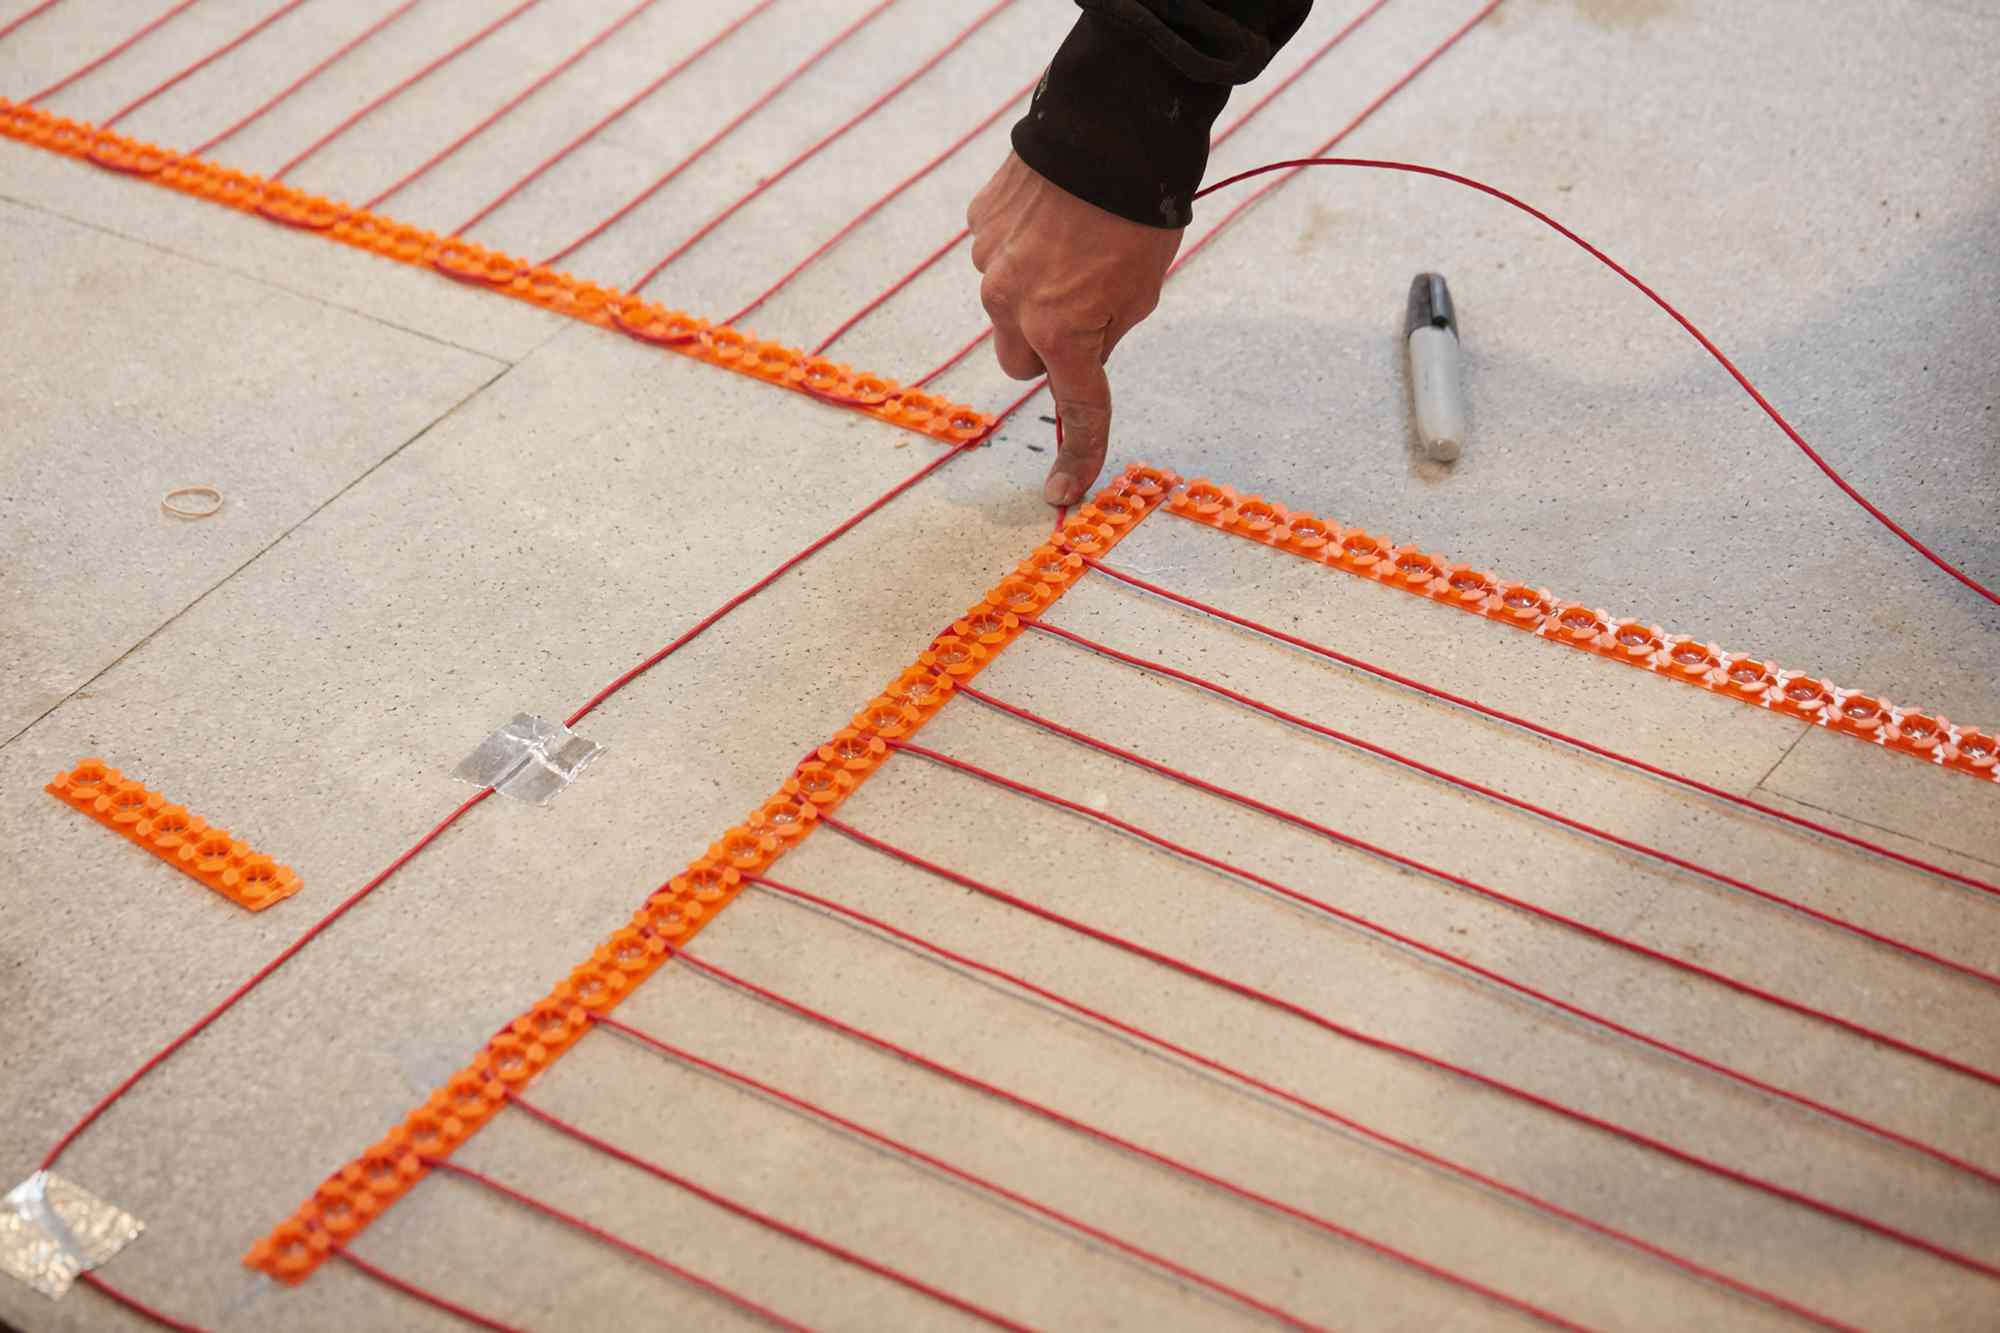 Attach Wires to Track